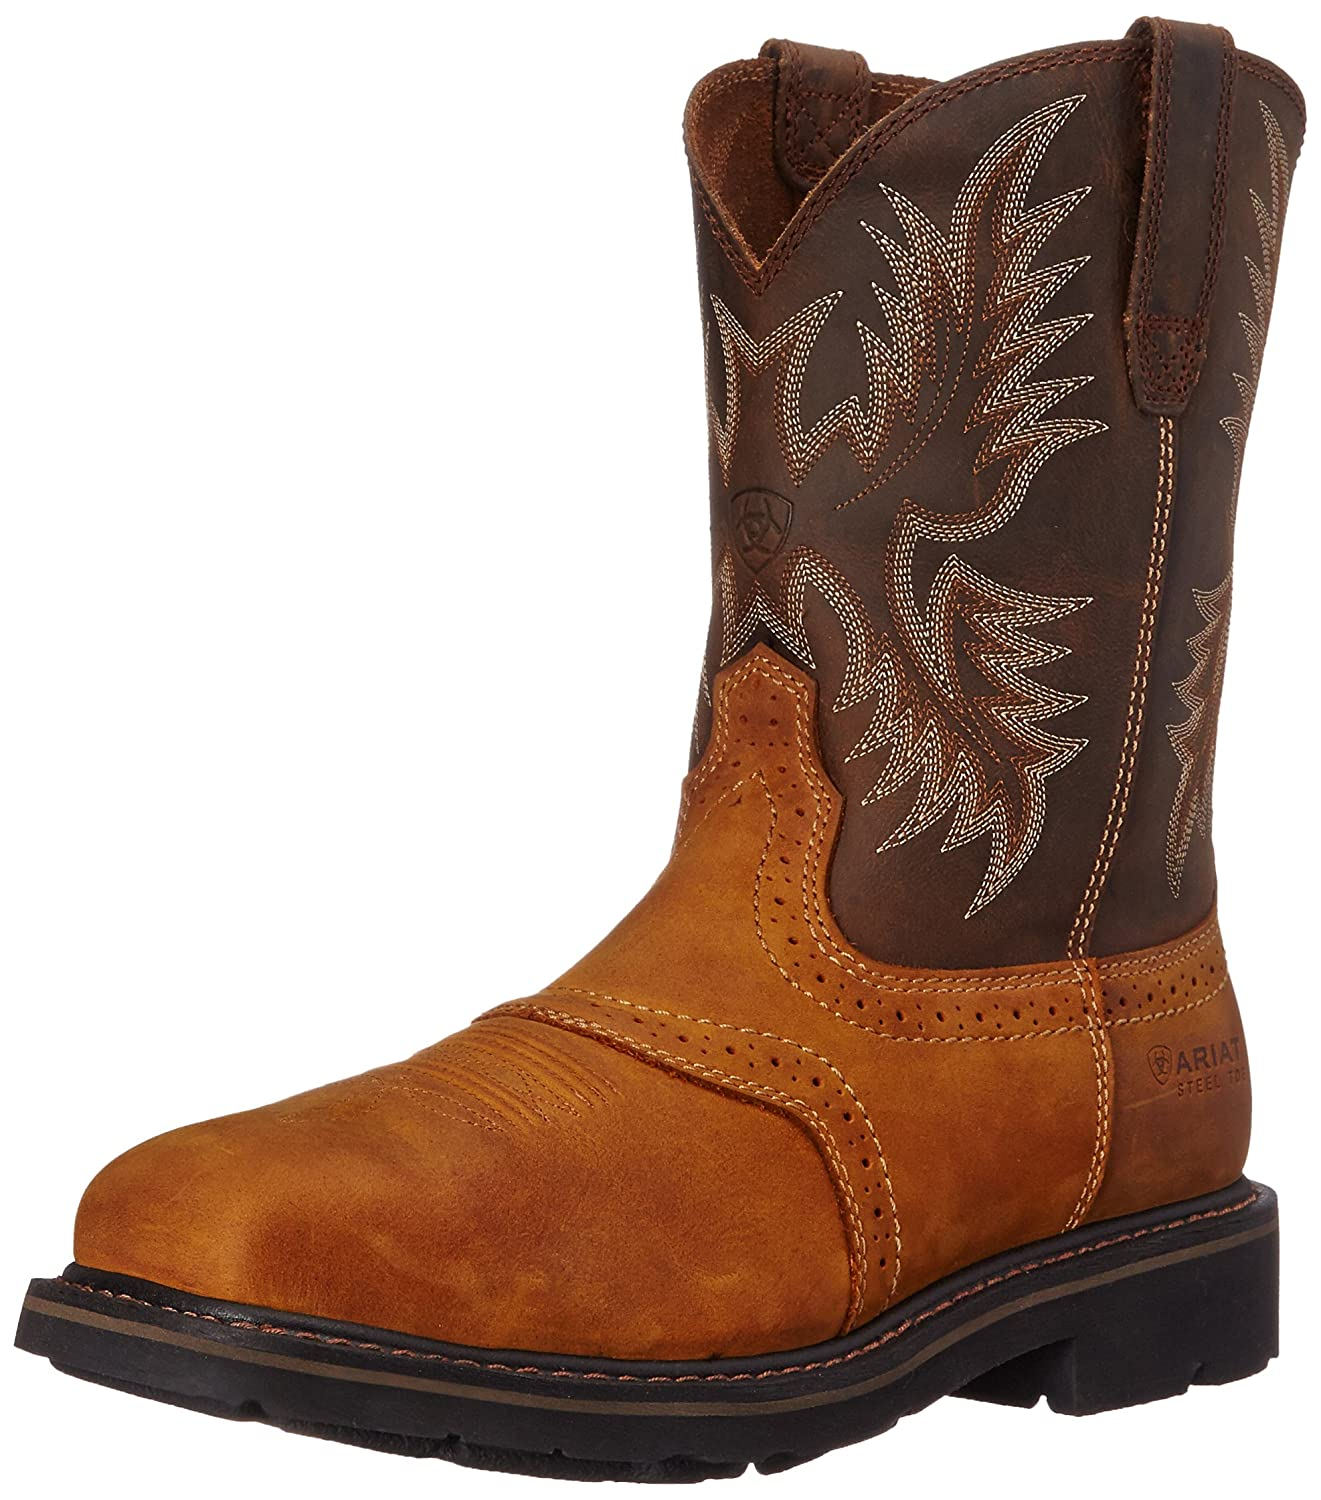 Ariat メンズ 100010134 B0074905YG 9 mens_us|Aged Bark Aged Bark 9 mens_us